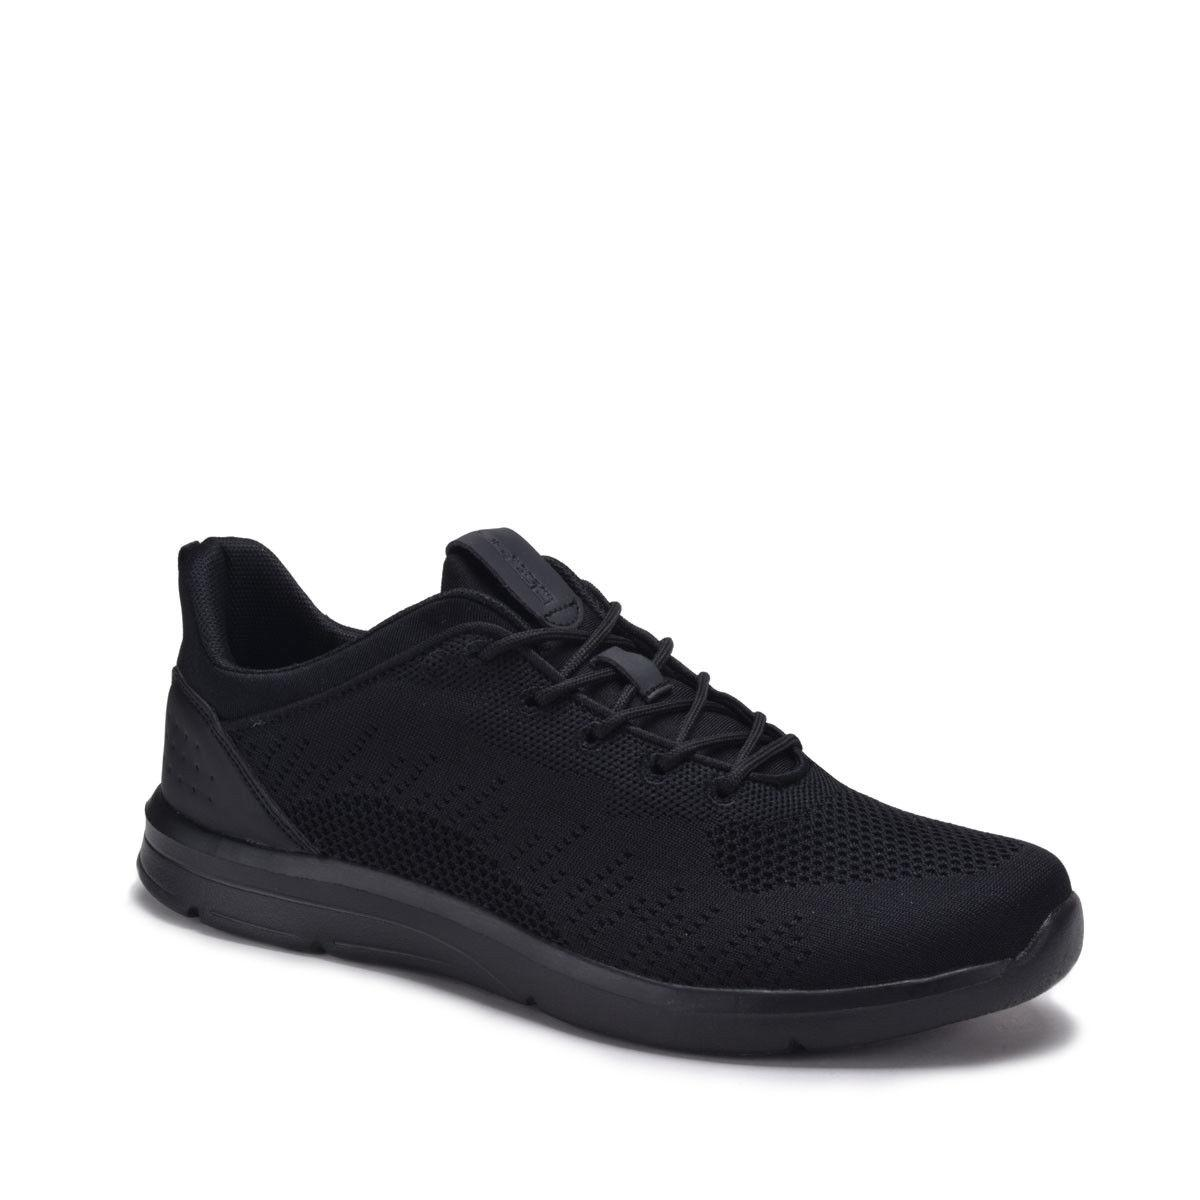 Mens Athletic Shoes Training Gym Sneakers